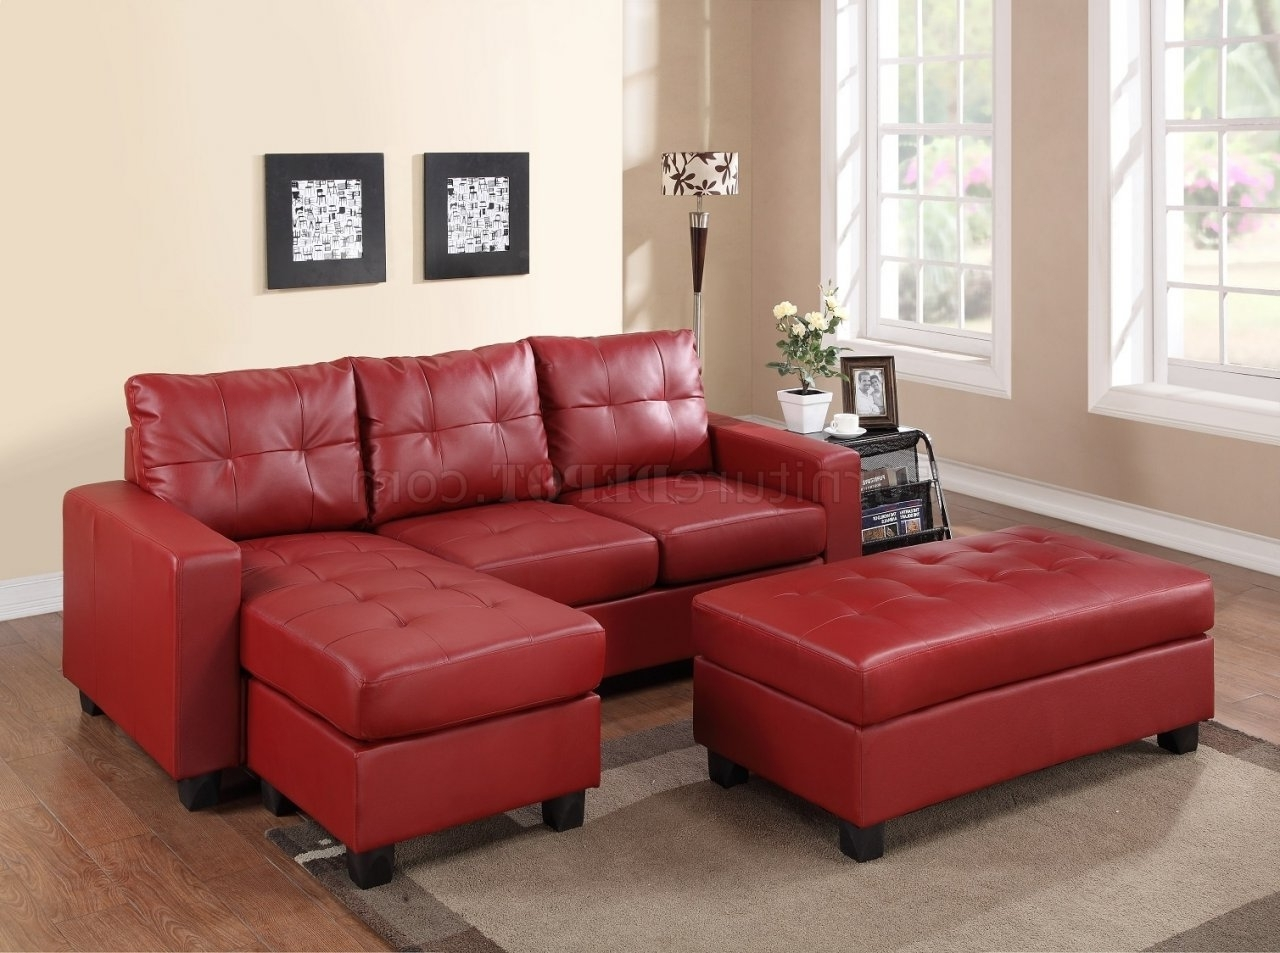 Red Leather Sectional Sofas With Ottoman With Regard To Favorite 2511 Sectional Sofa Set In Red Bonded Leather Match Pu (View 12 of 15)